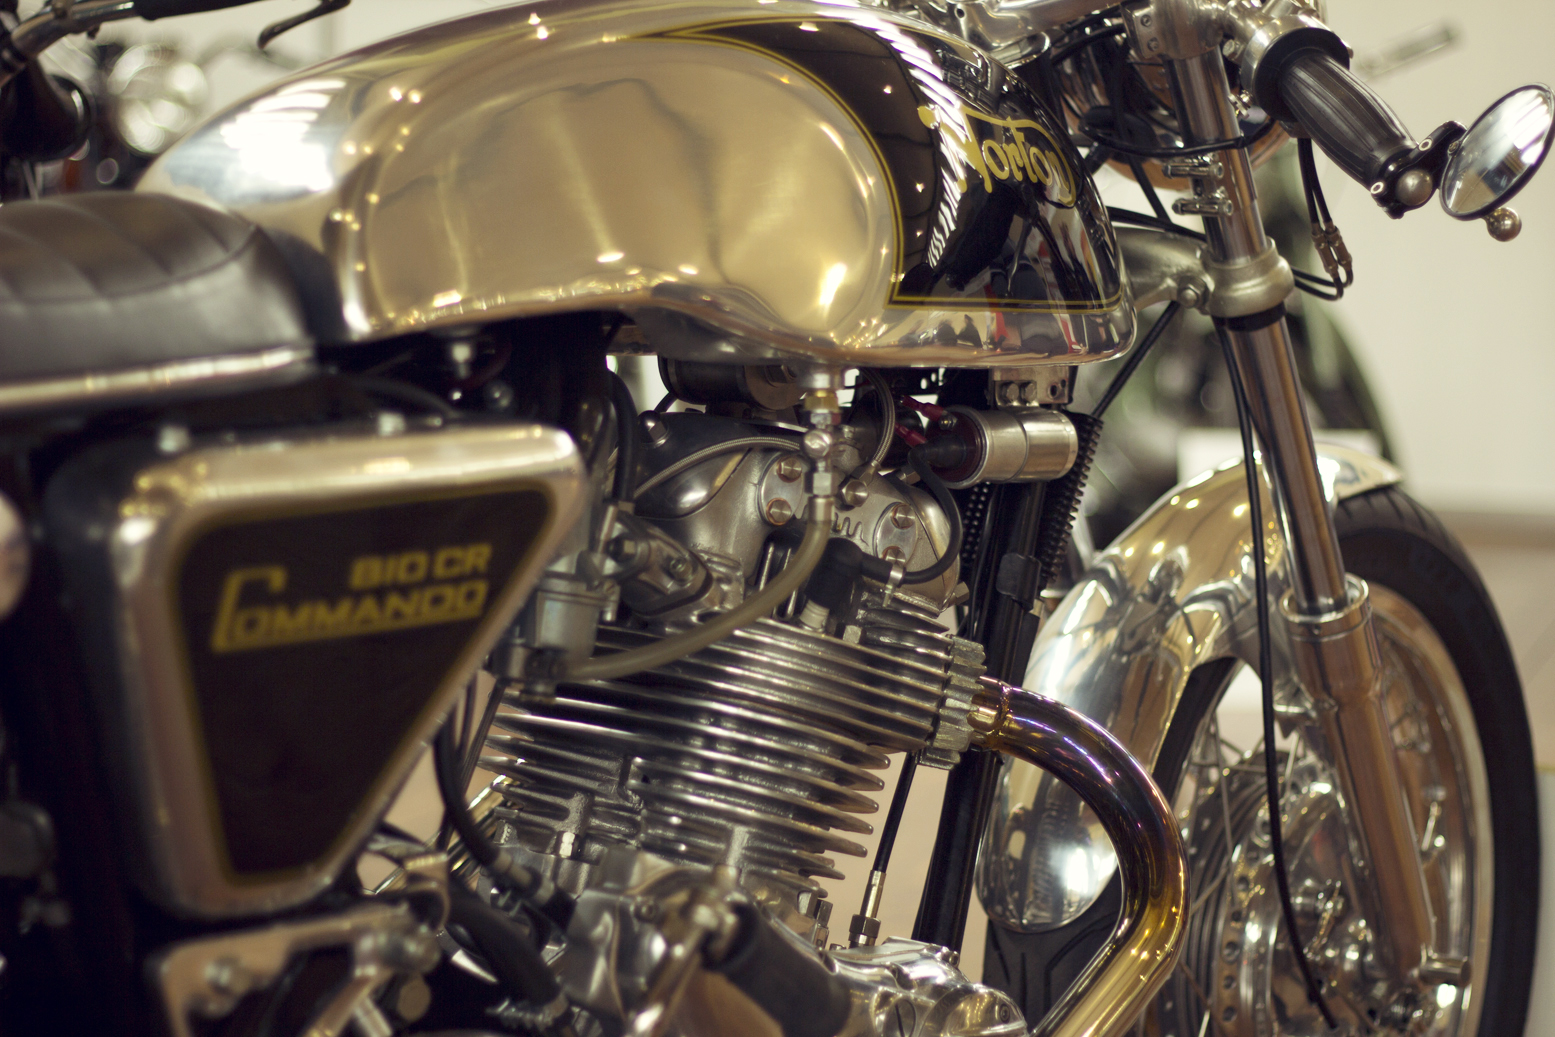 Return of the Cafe Racers - Motorclassica 2012 motorcycle highlights